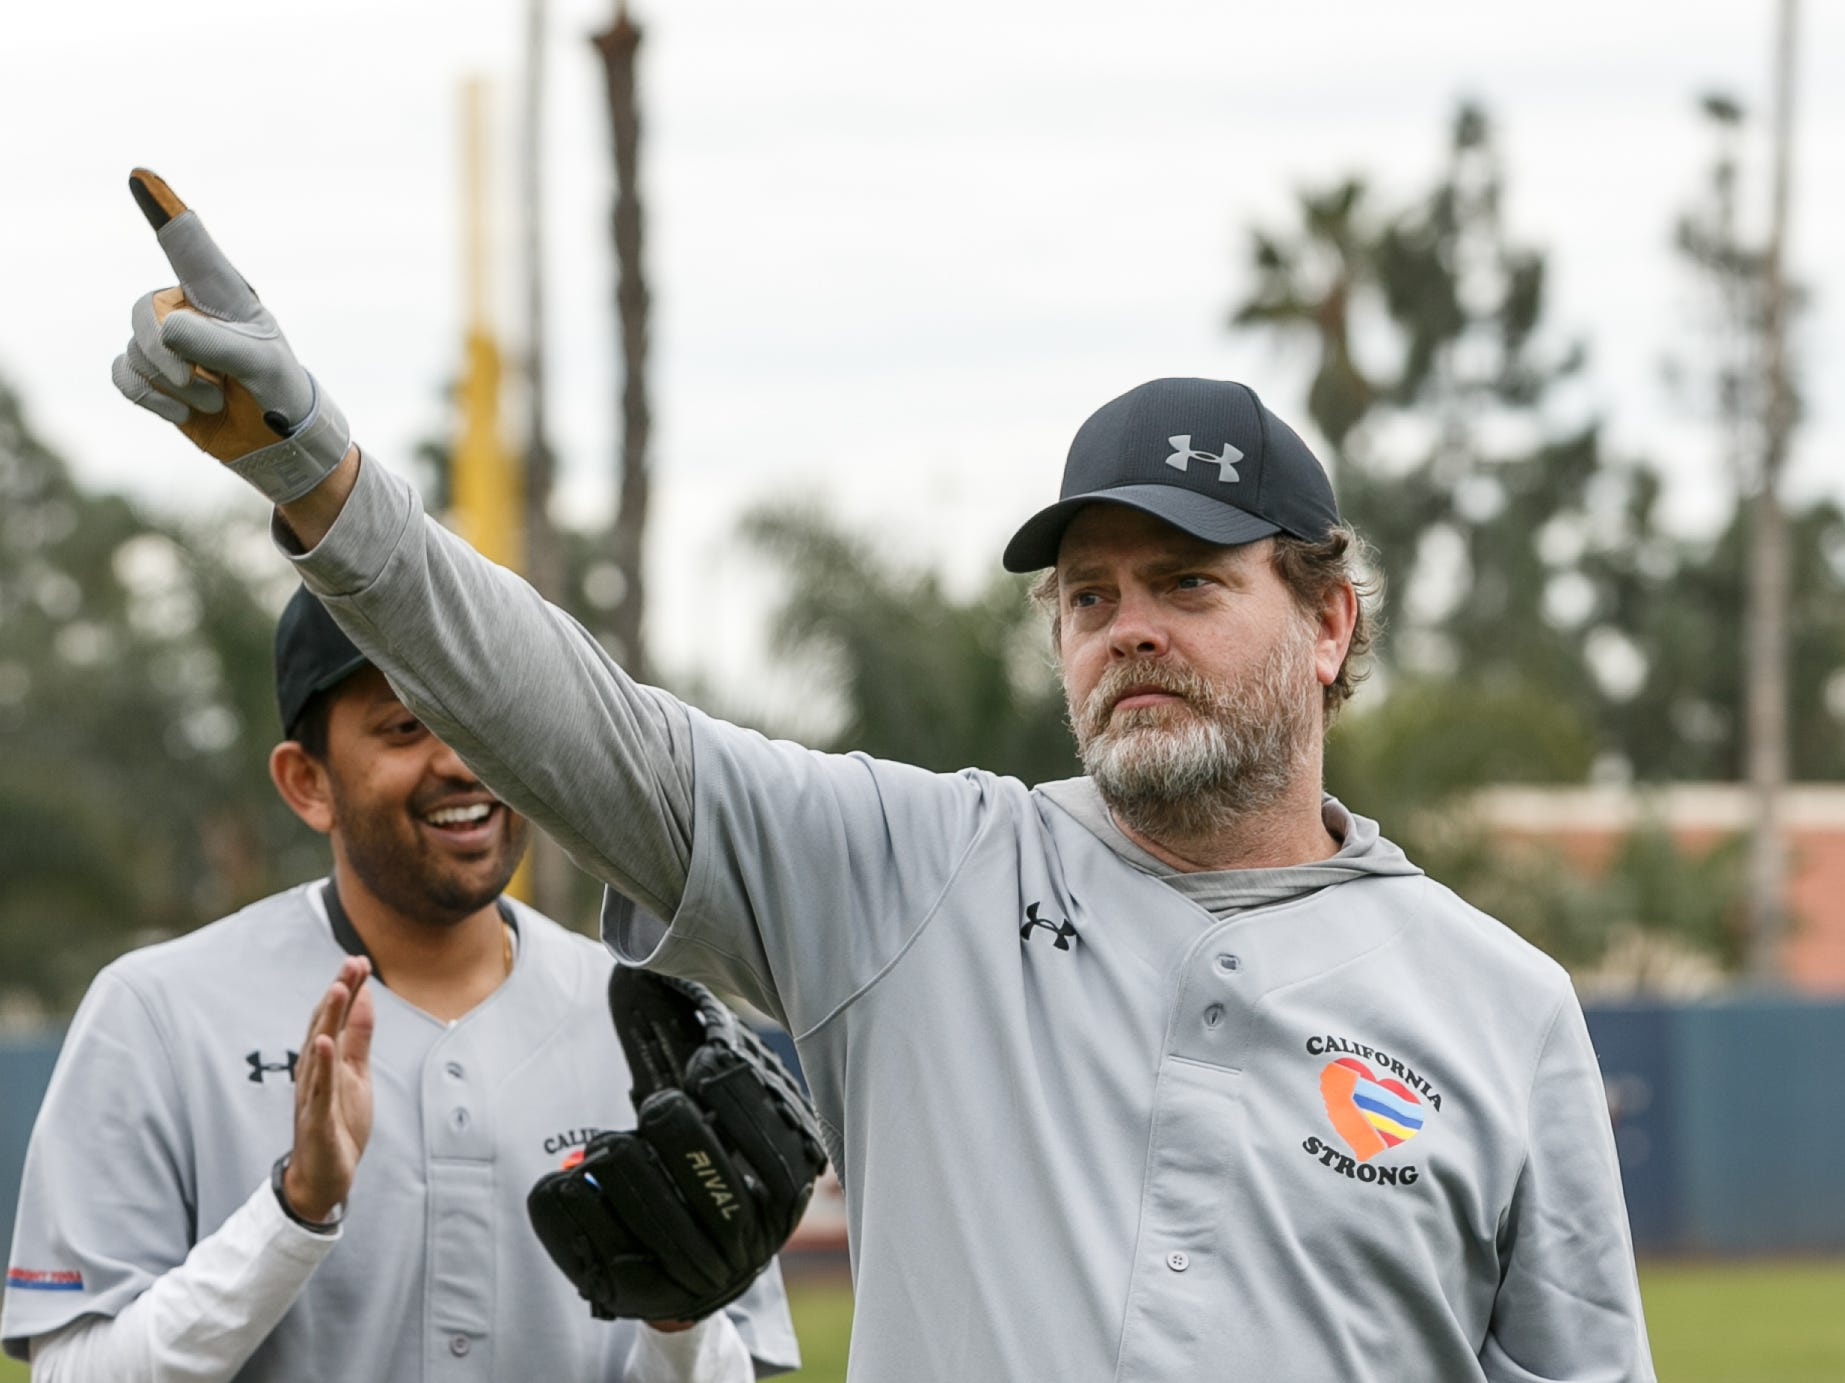 "MALIBU, CALIFORNIA - JANUARY 13:  Rainn Wilson attends a charity softball game to benefit ""California Strong"" at Pepperdine University on January 13, 2019 in Malibu, California. (Photo by Rich Polk/Getty Images for California Strong) ORG XMIT: 775276797 ORIG FILE ID: 1093819524"